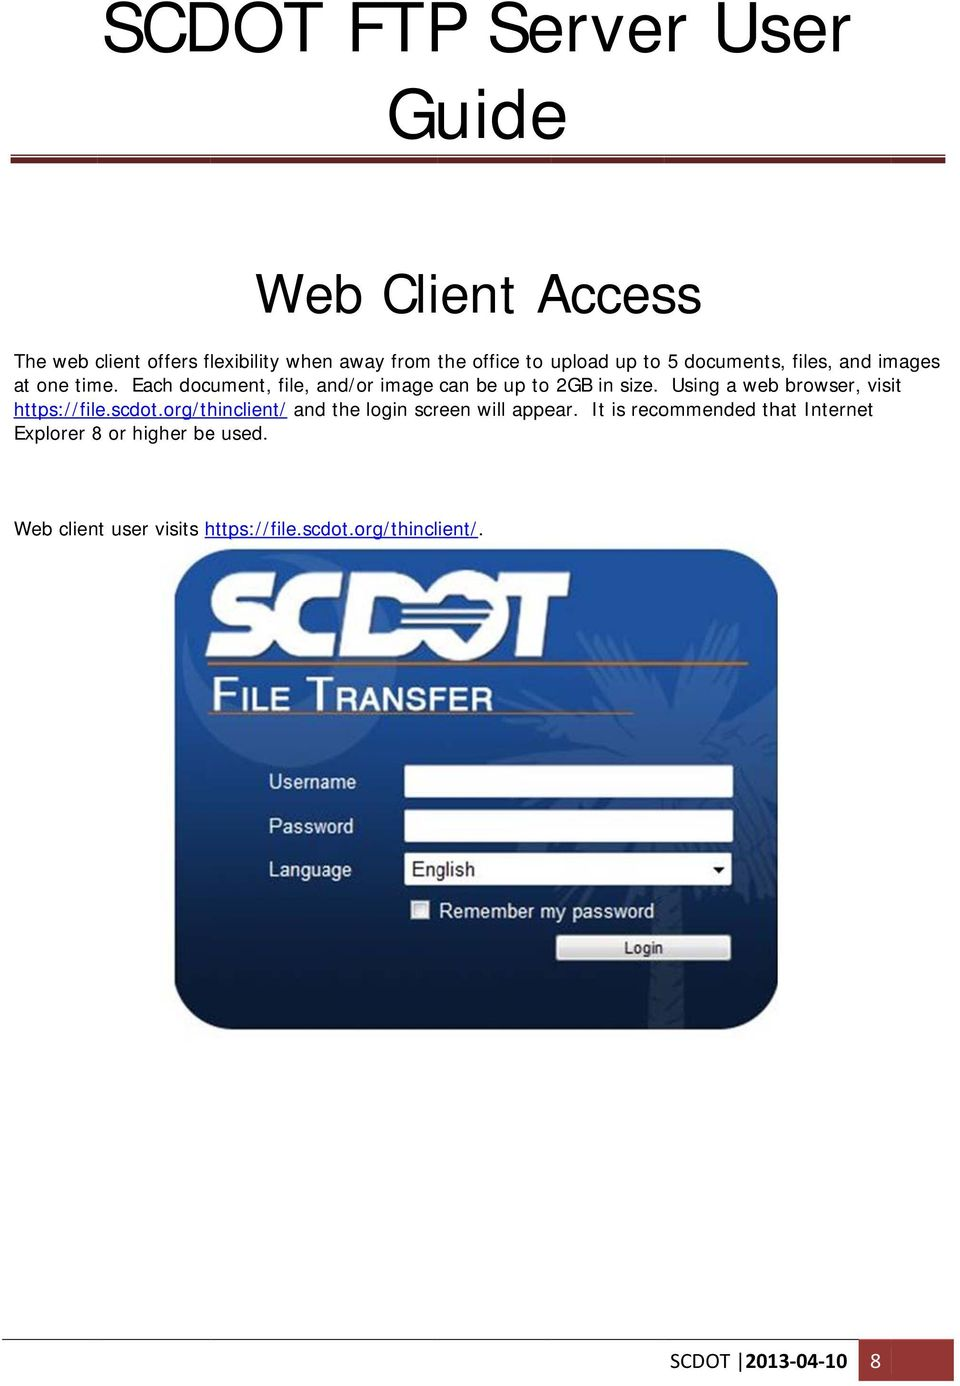 Using a web browser, visit https://file.scdot.org/thinclient/ and the login screen will appear.